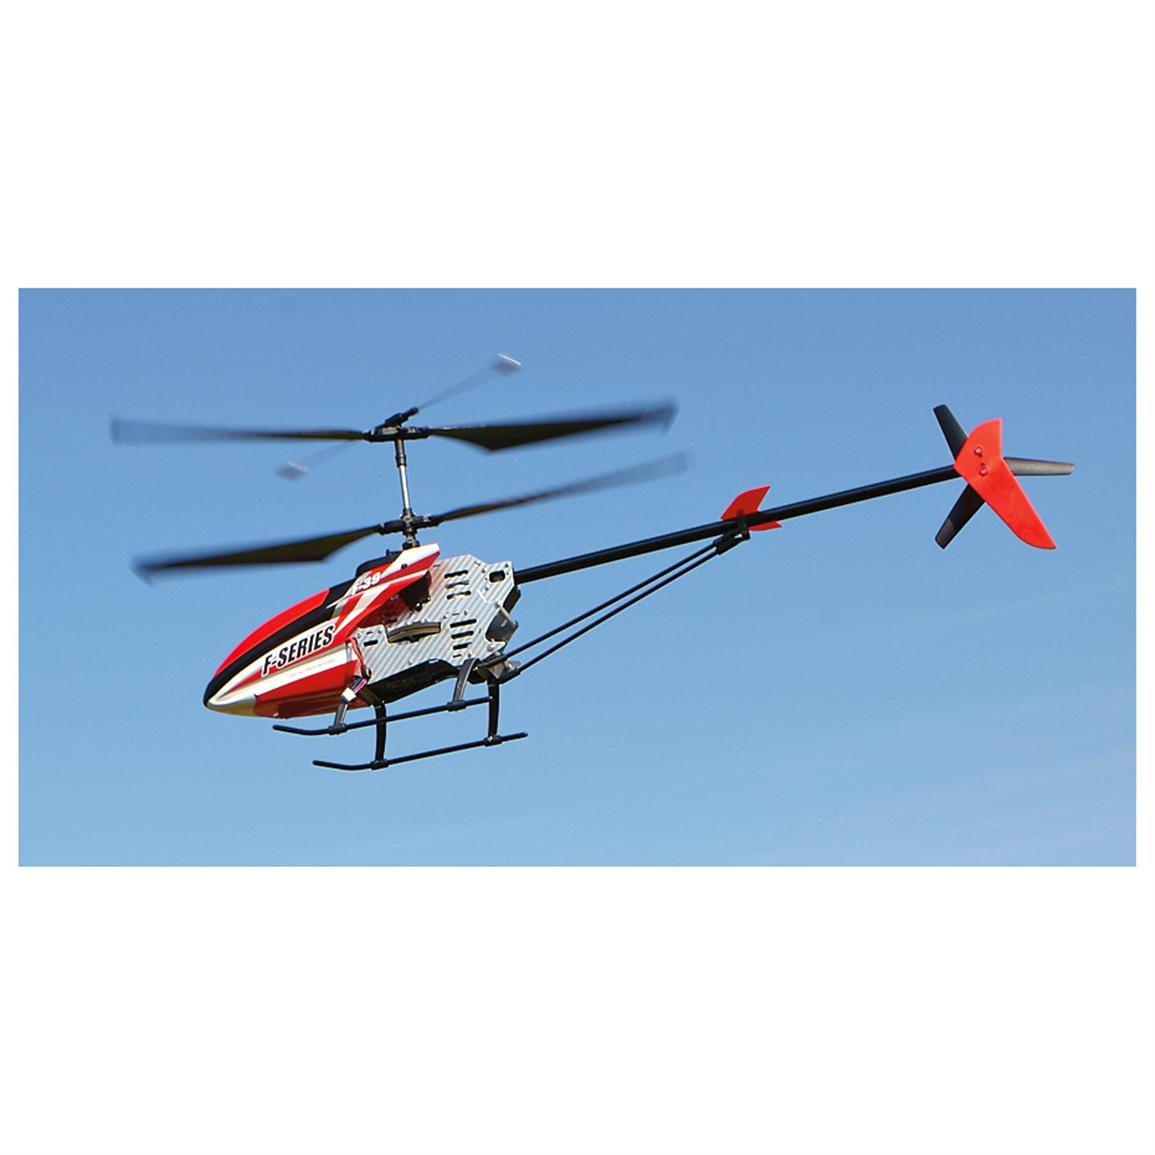 Digital Radio-controlled Super Hobby Helicopter